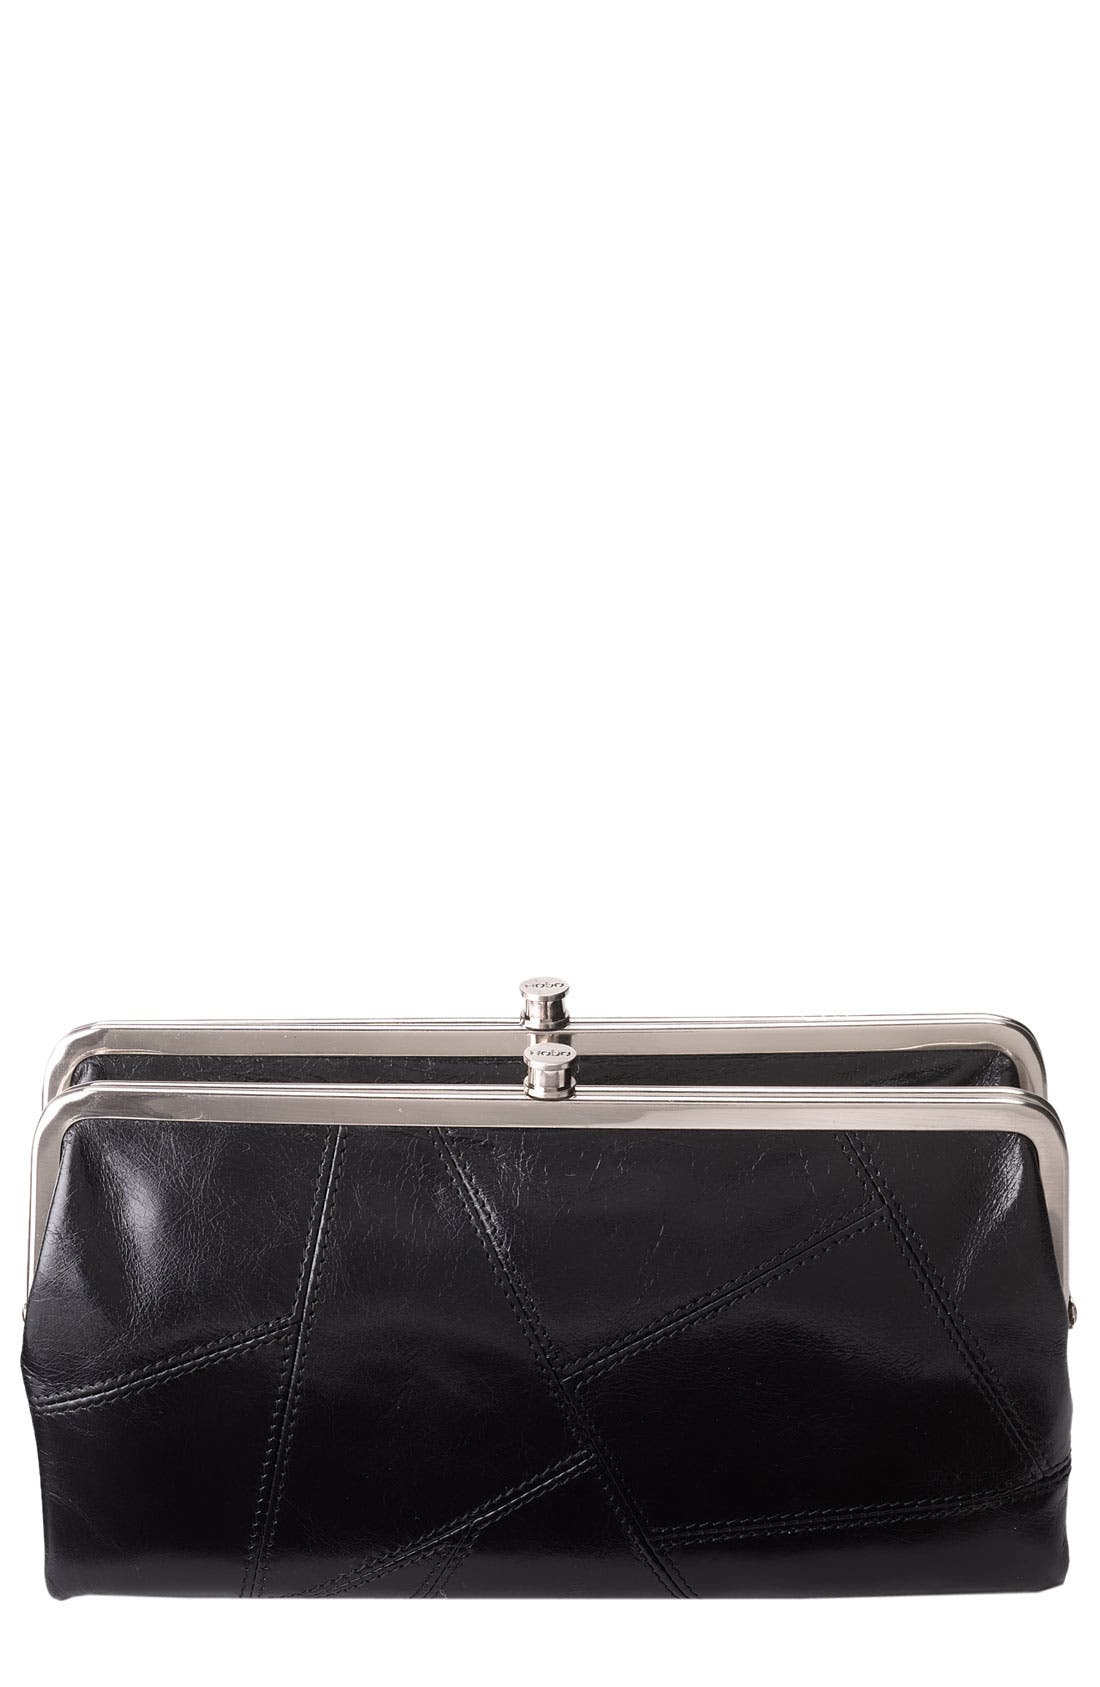 Main Image - Hobo 'Lauren' Pieced Double Frame Clutch Wallet